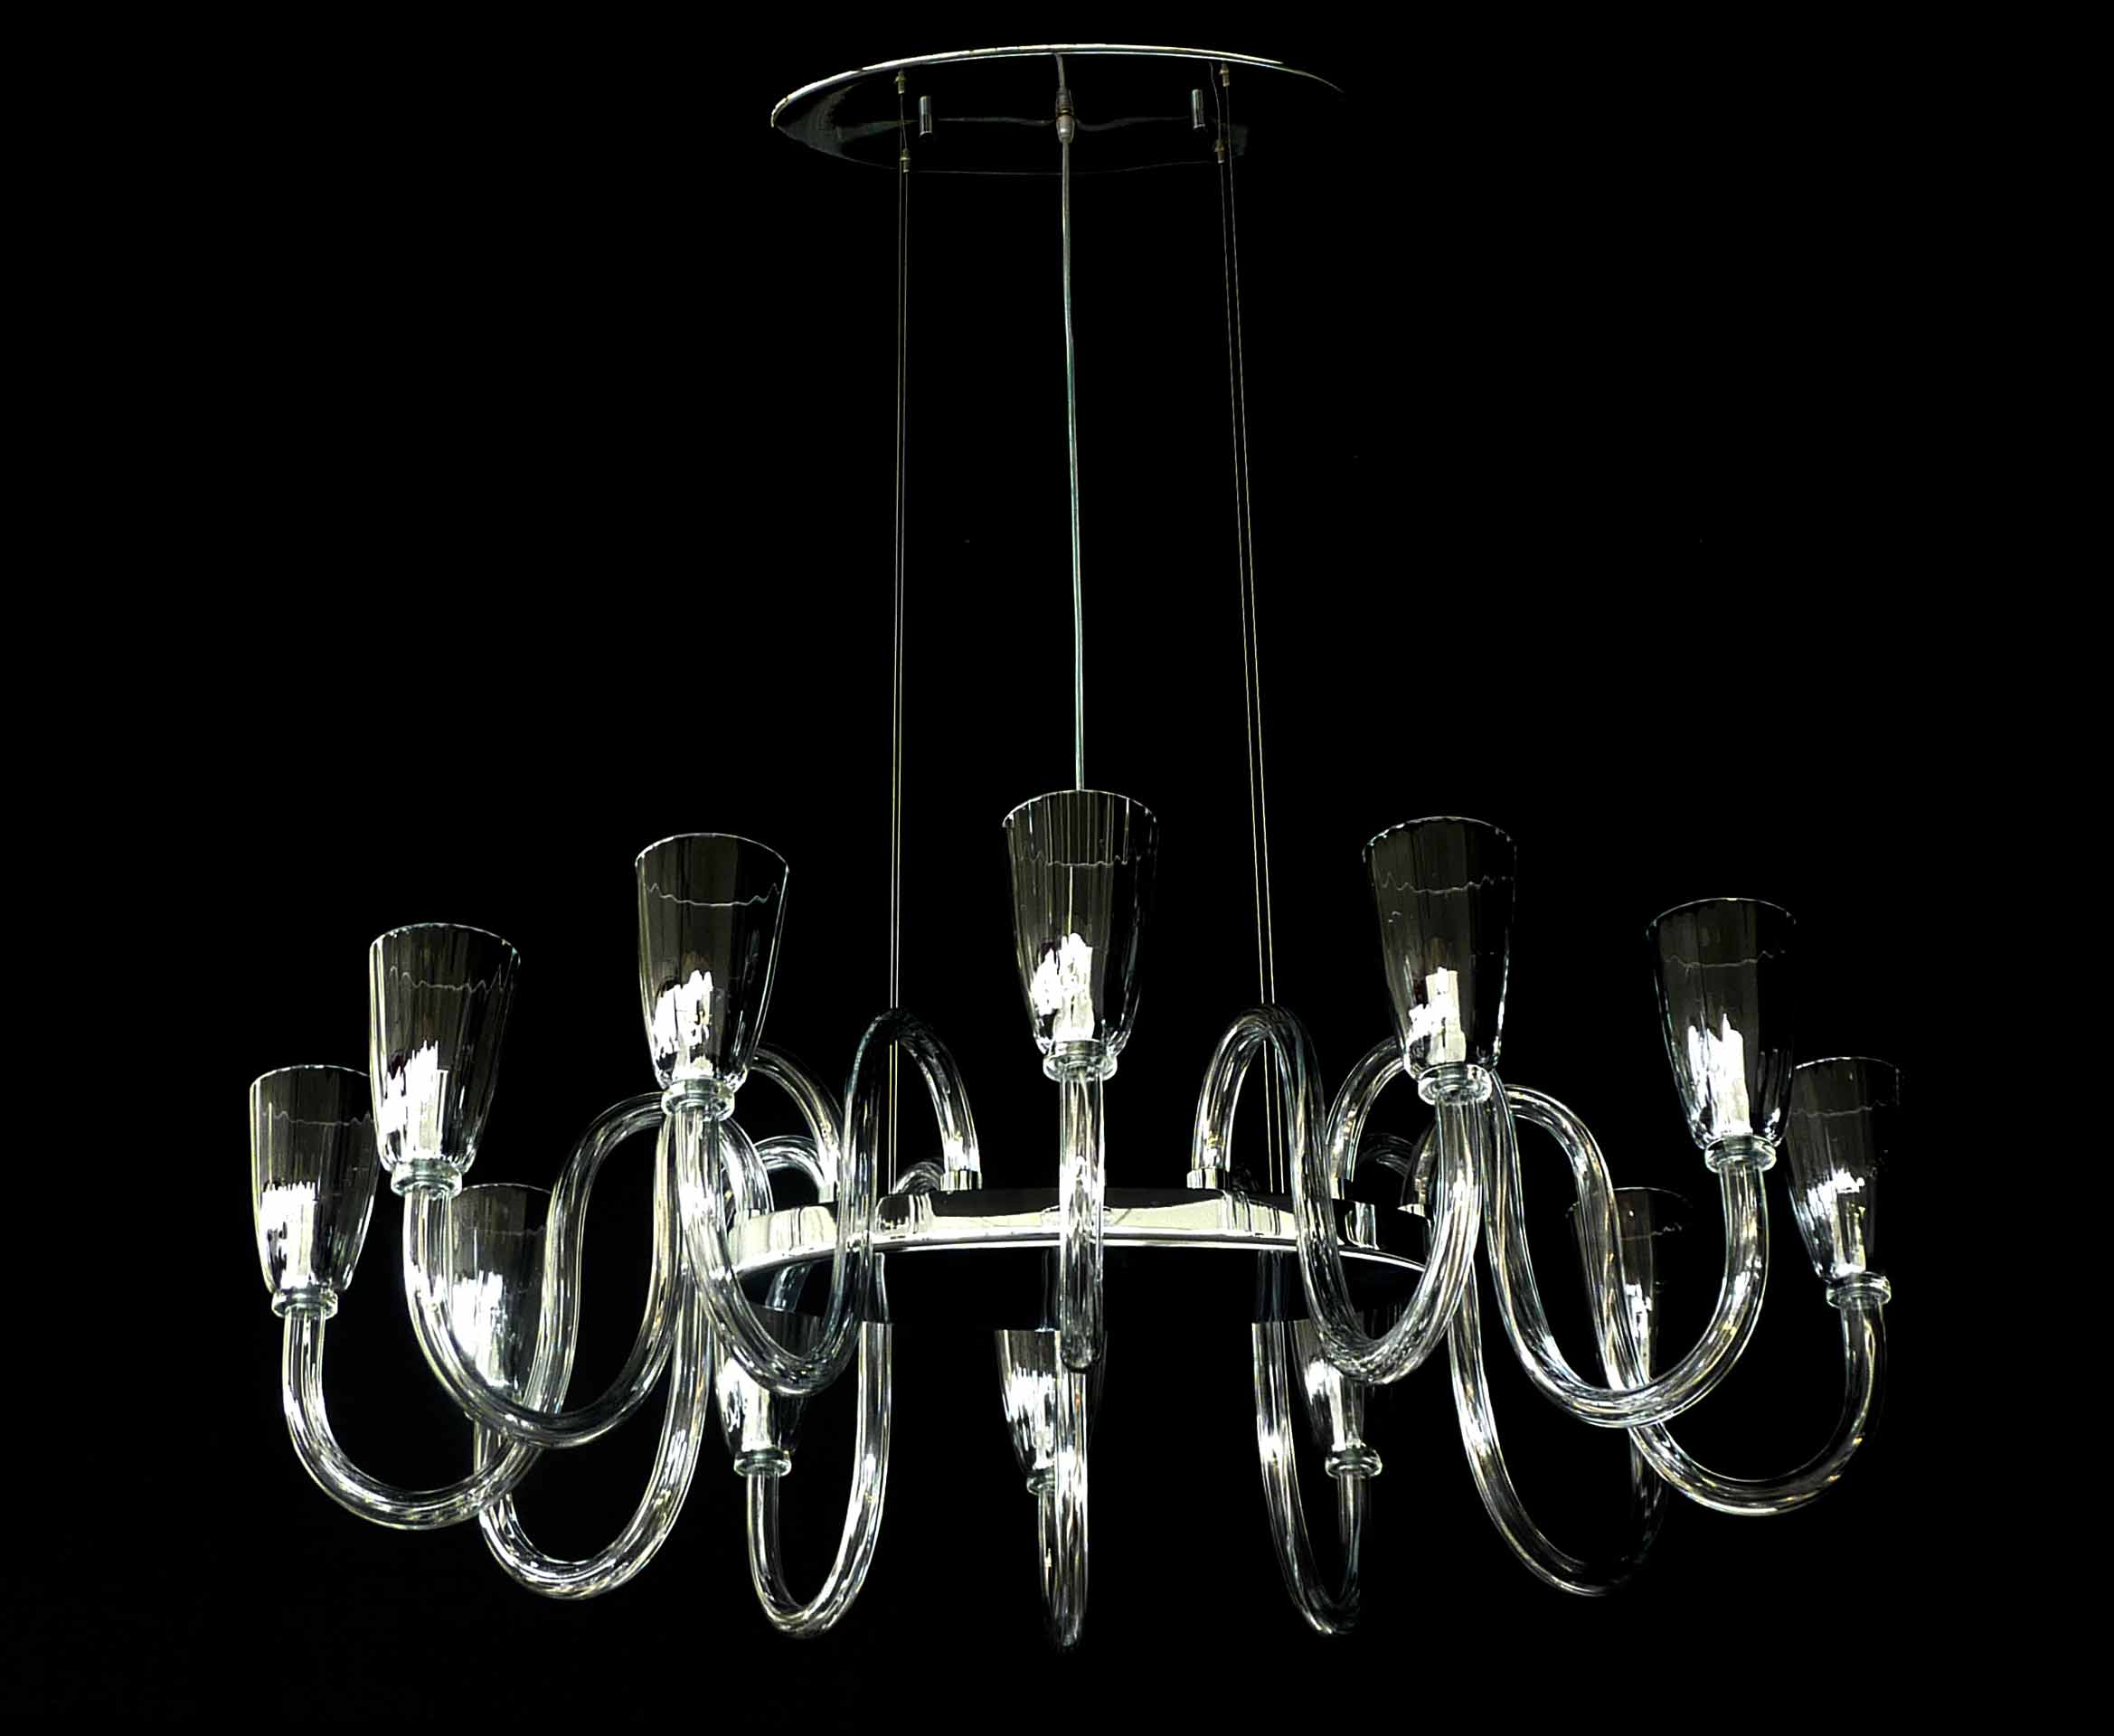 Palladio modern chandelier murano blown glass lucevetro